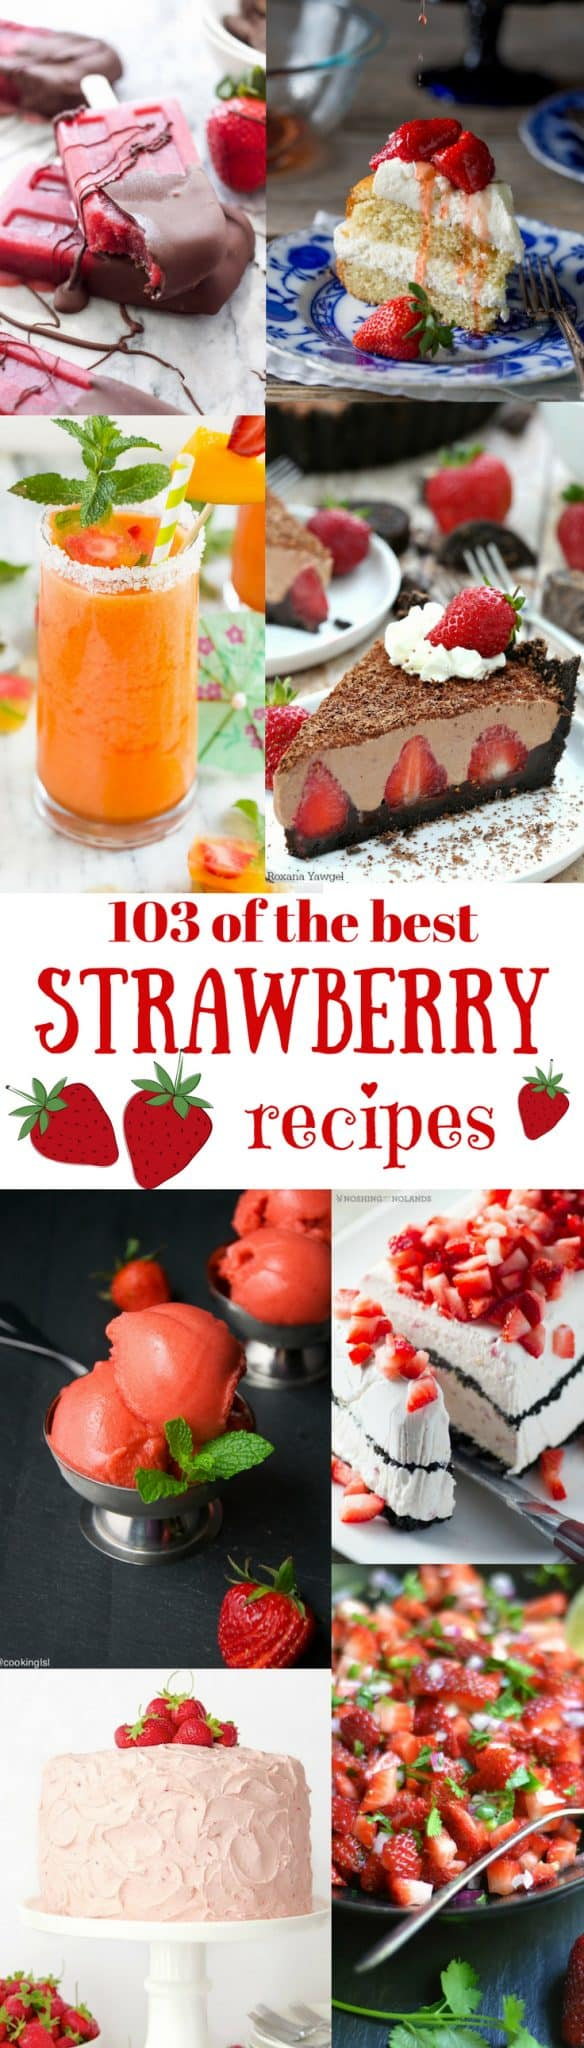 103 of the best Strawberry Recipes - salads, desserts, drinks, and more! www.savingdessert.com